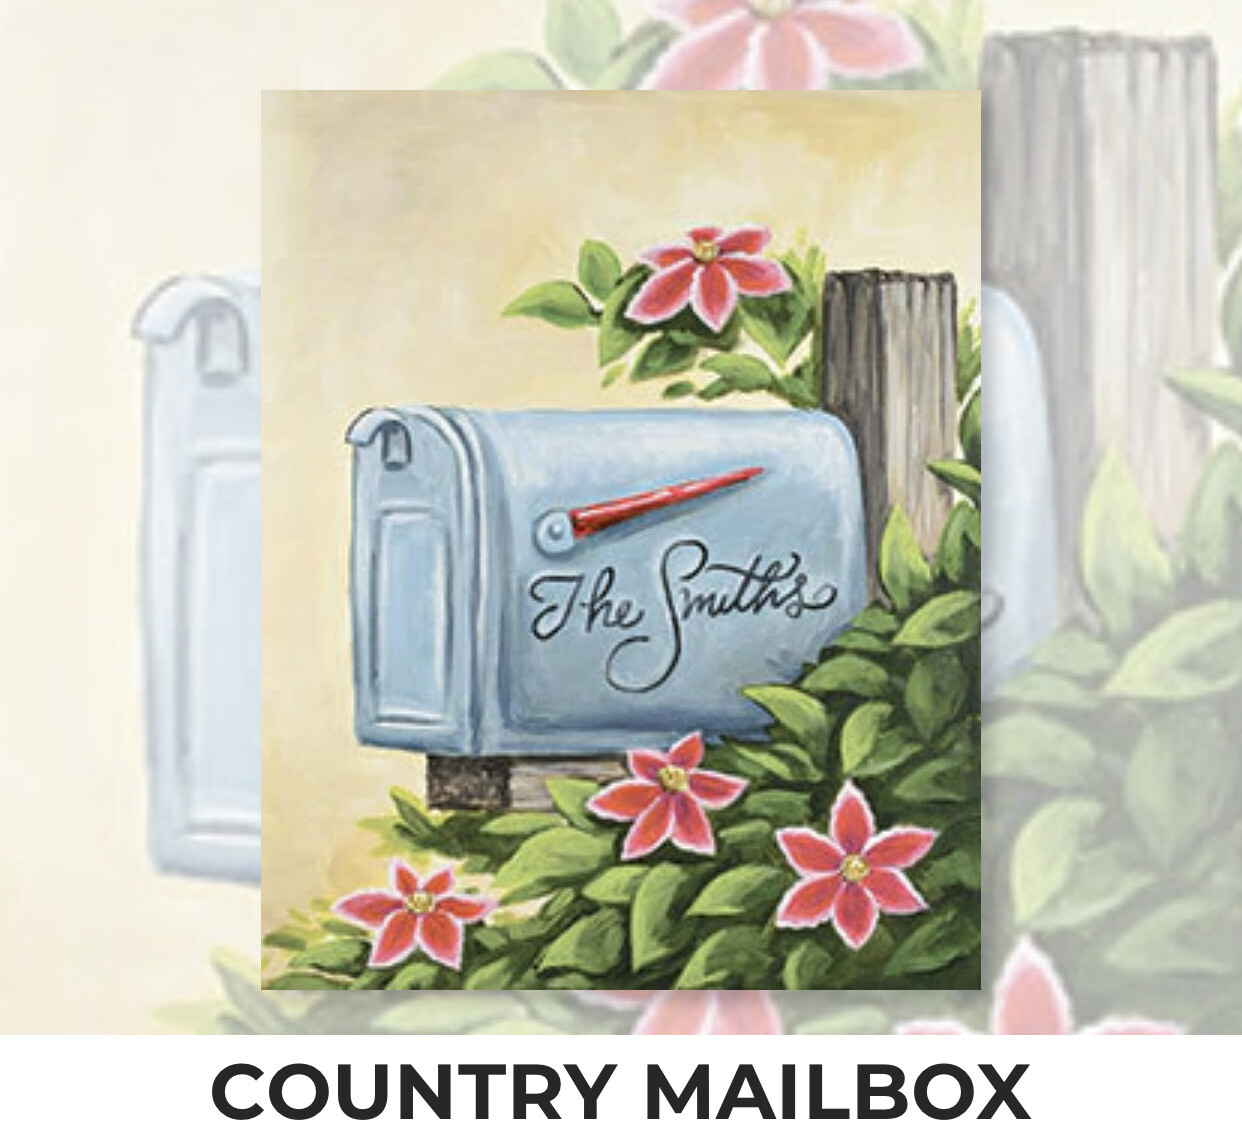 Country Mailbox ADULT Acrylic Paint On Canvas DIY Art Kit - 3 Week Special Order